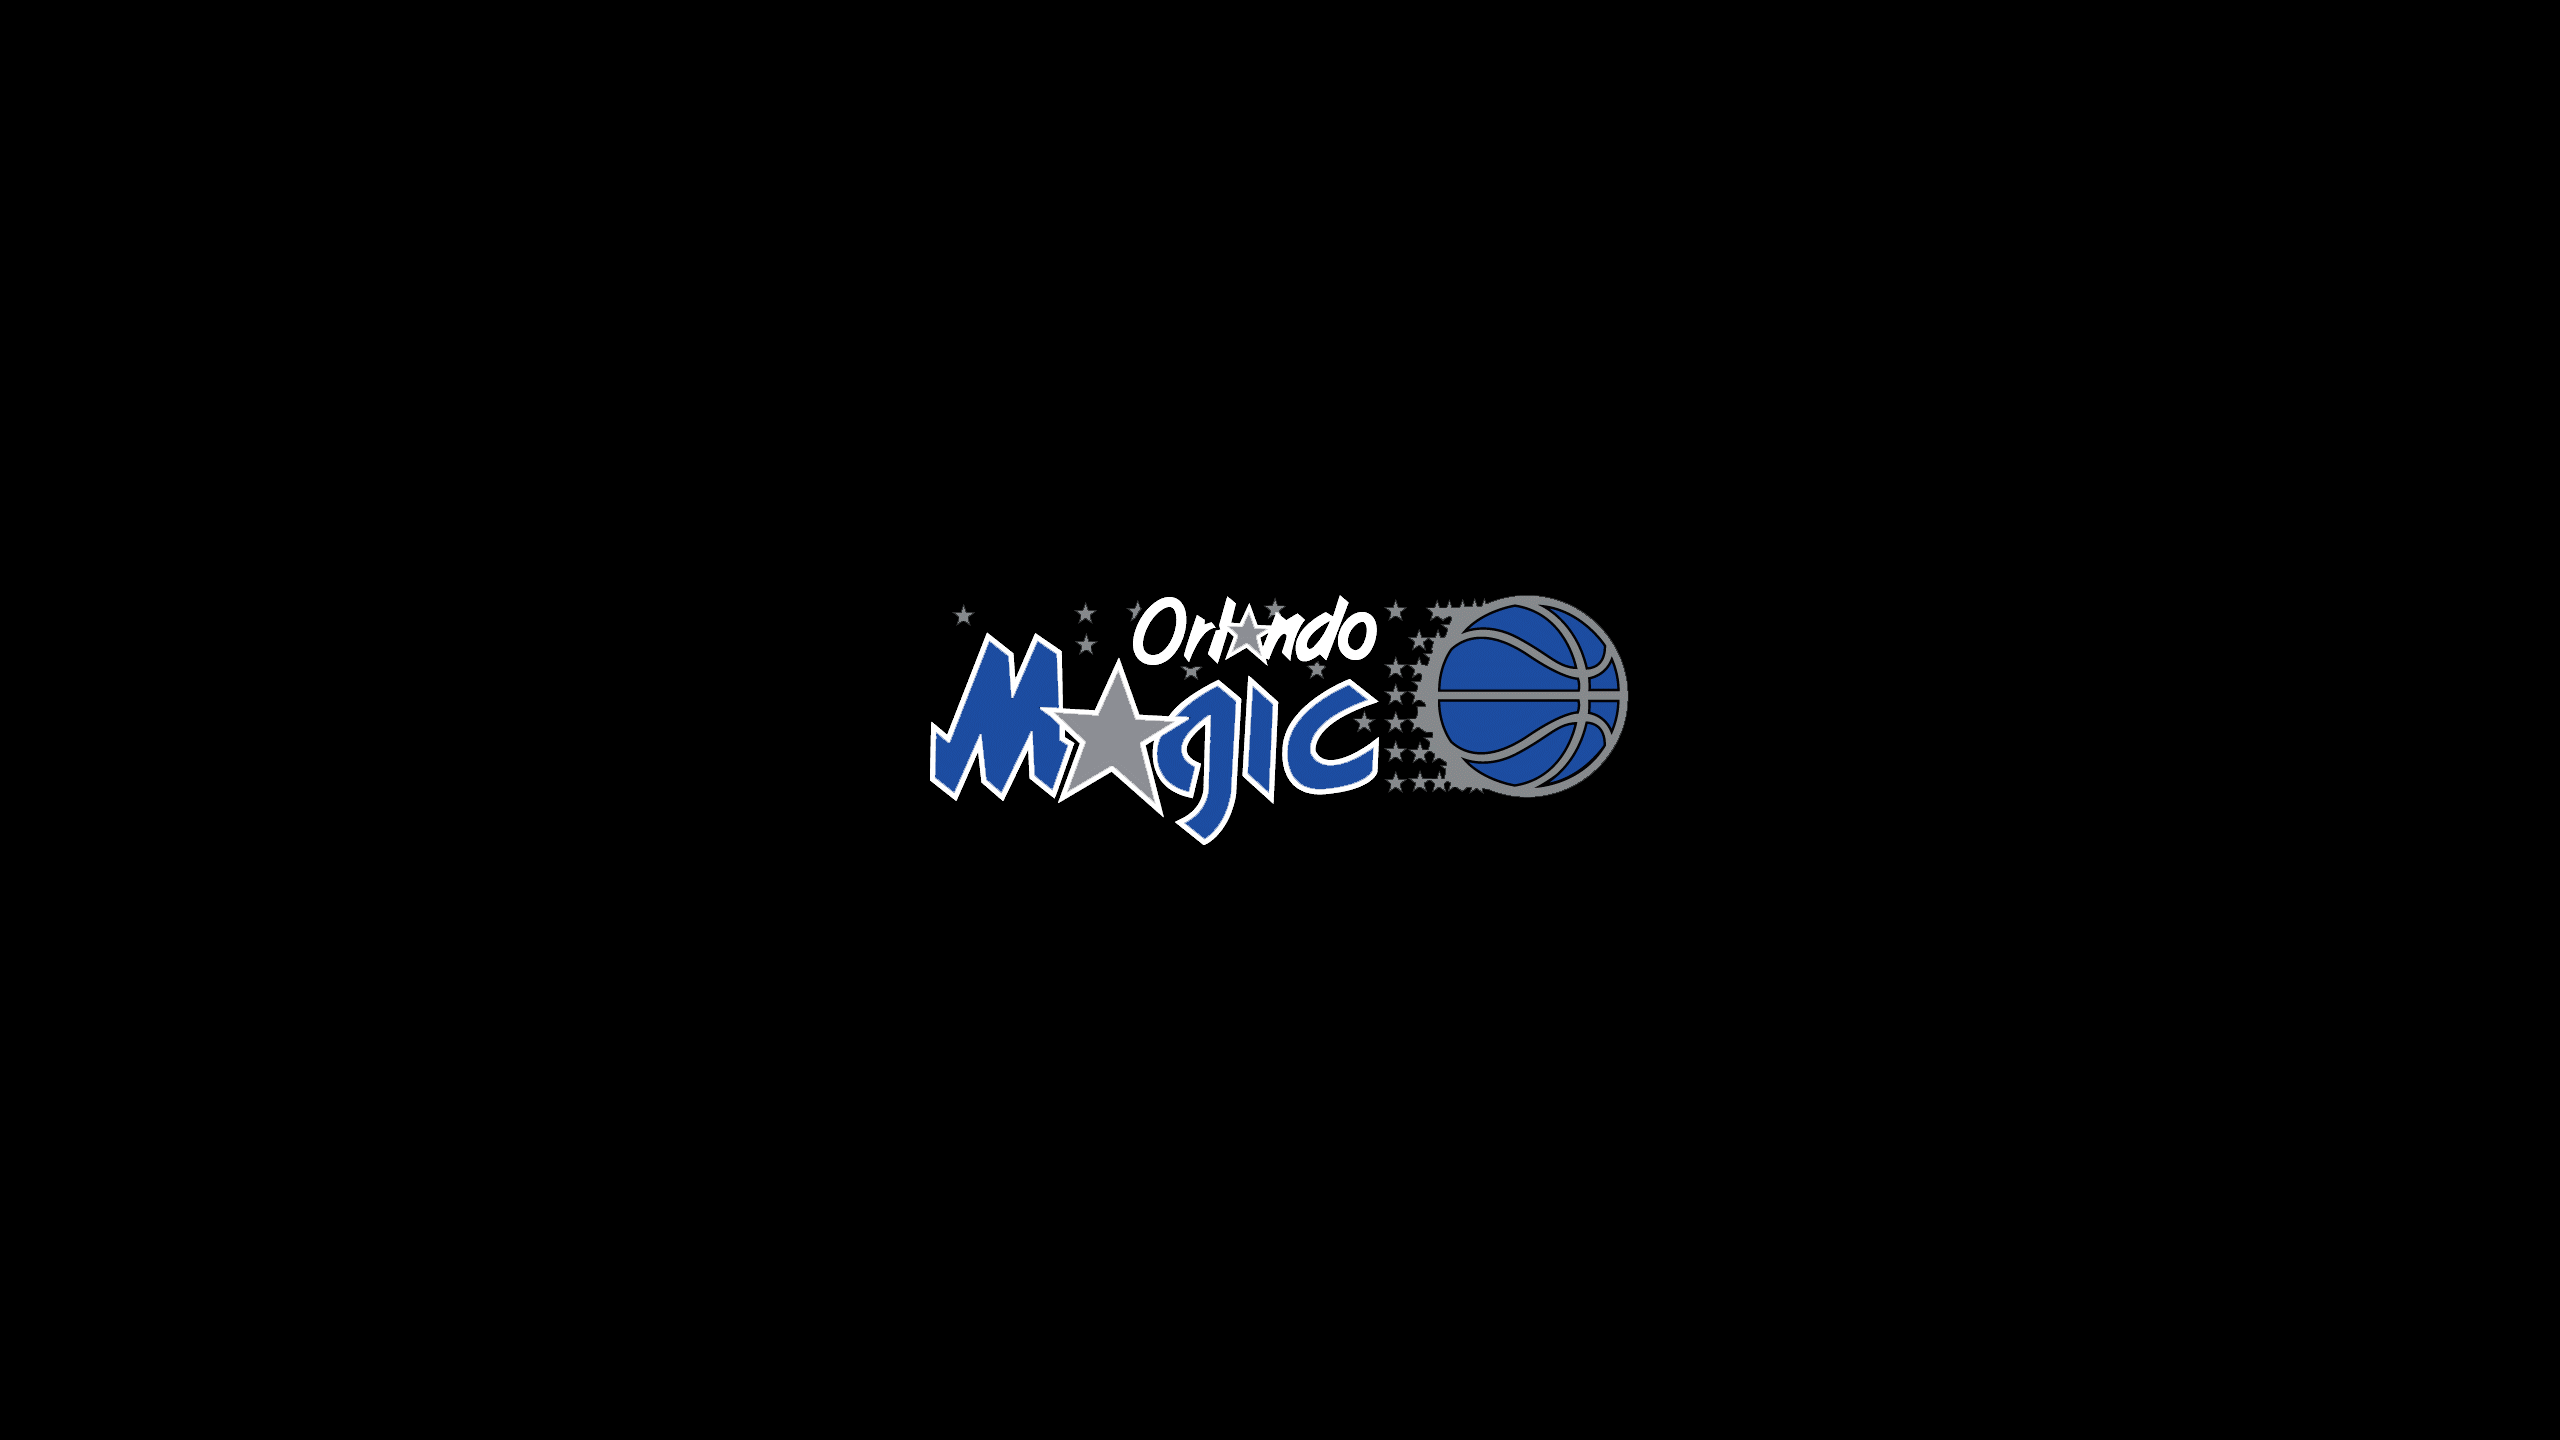 Orlando Magic (Old School)